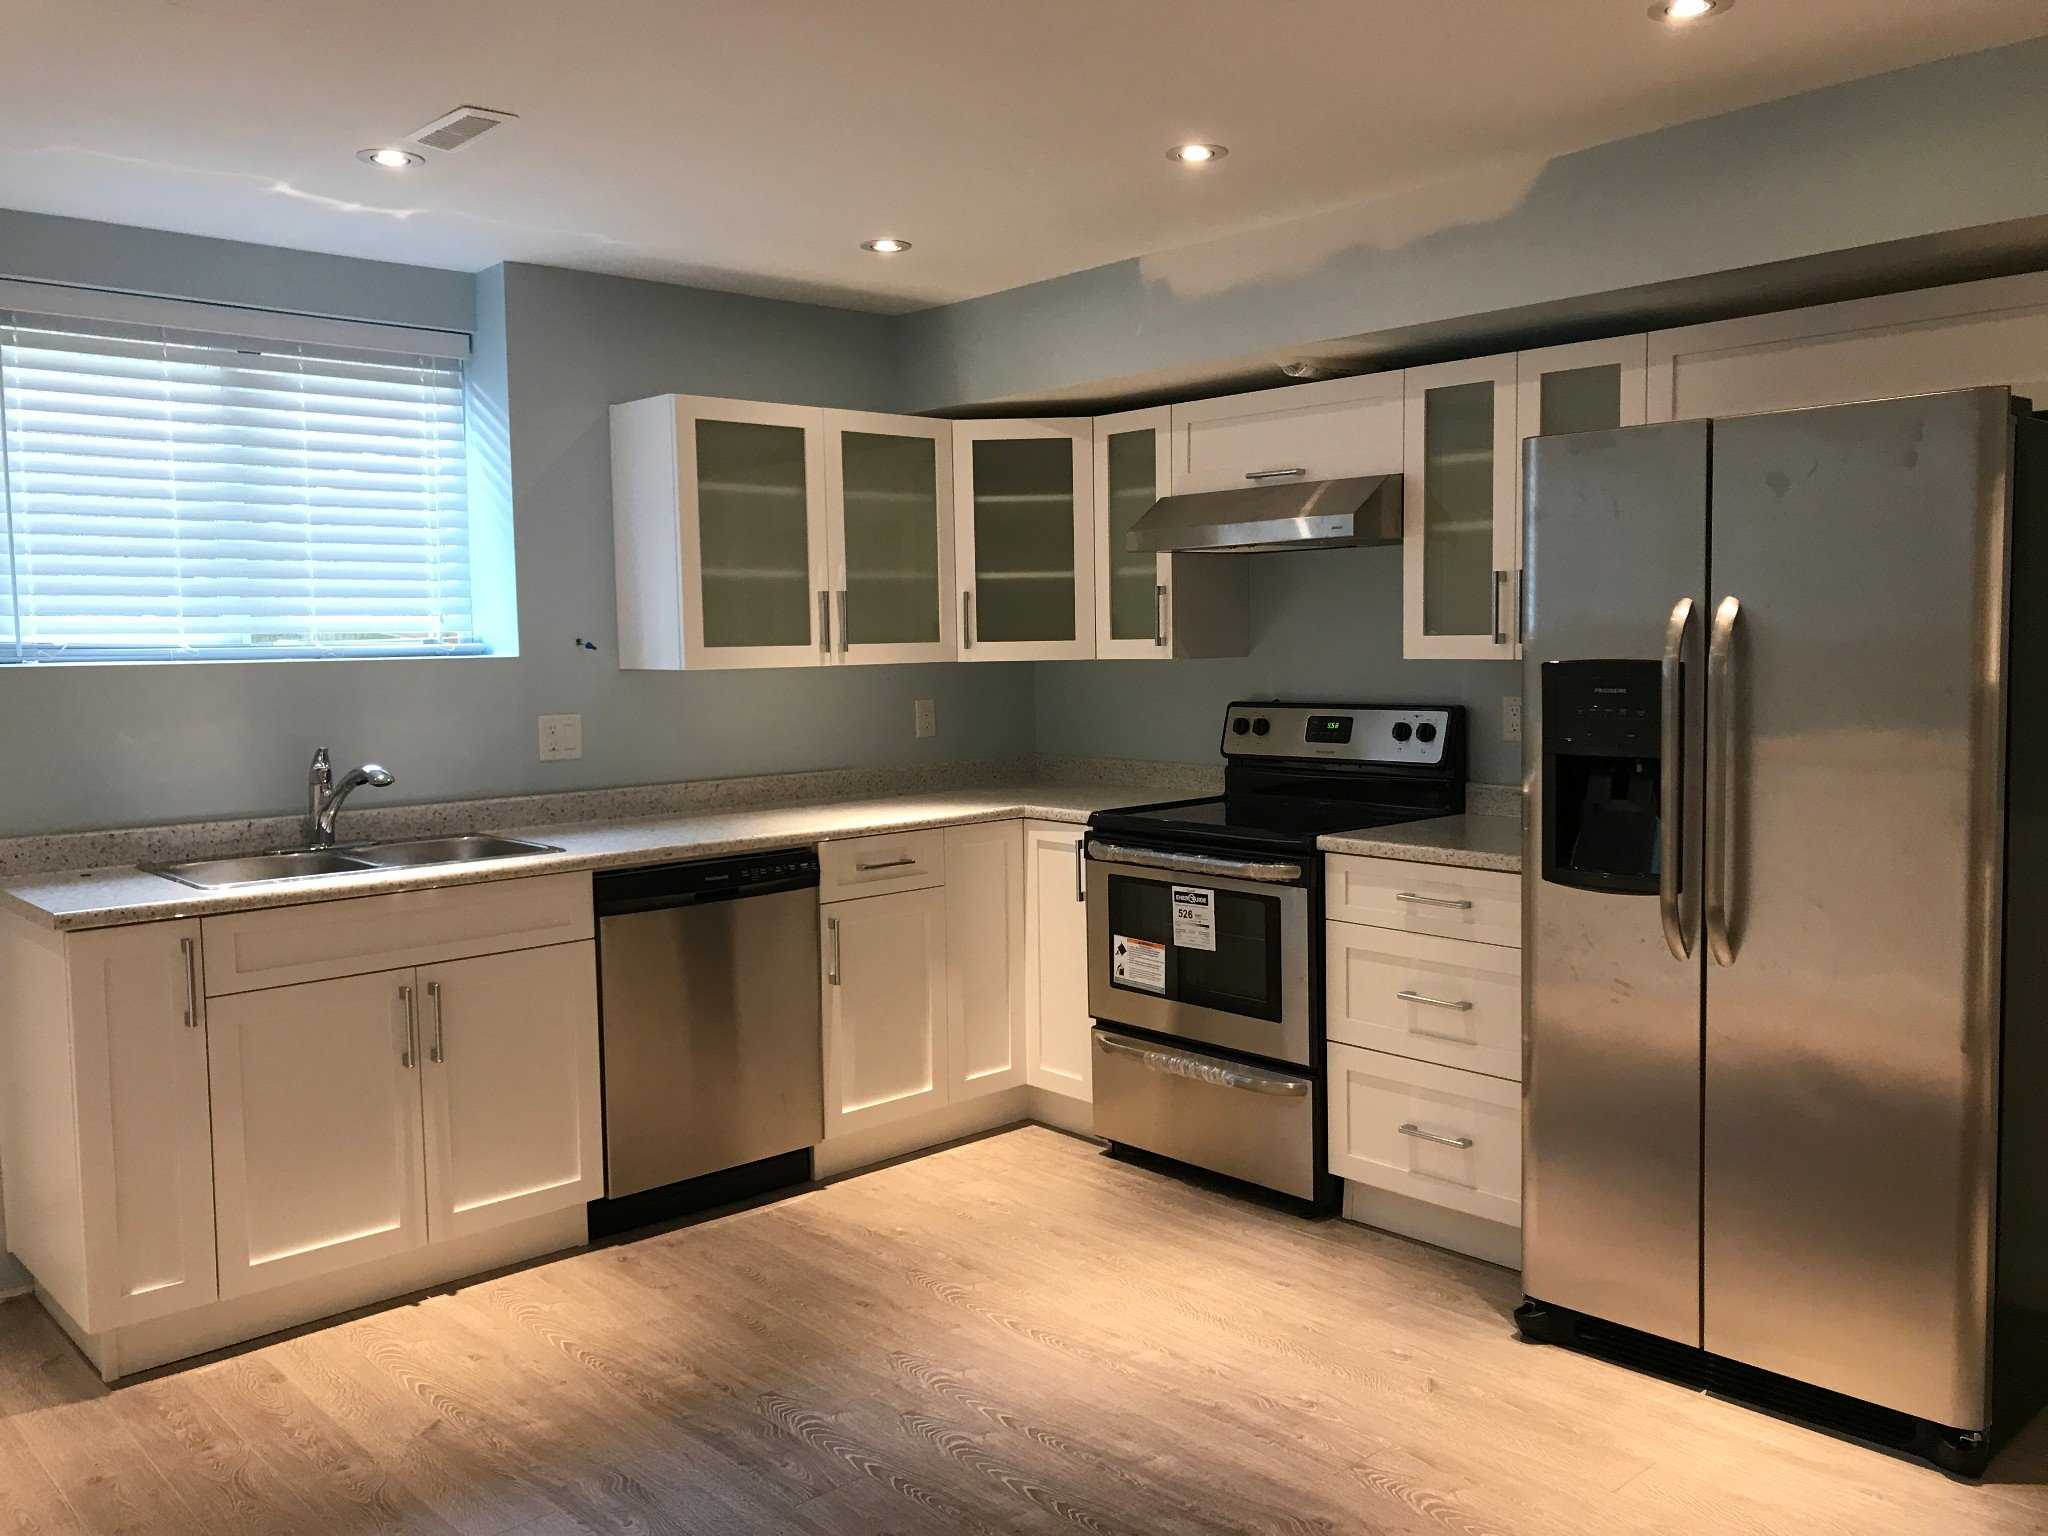 Photo 3: Photos: BSMT 2073 Zinfandel Dr. in Abbotsford: Aberdeen Condo for rent